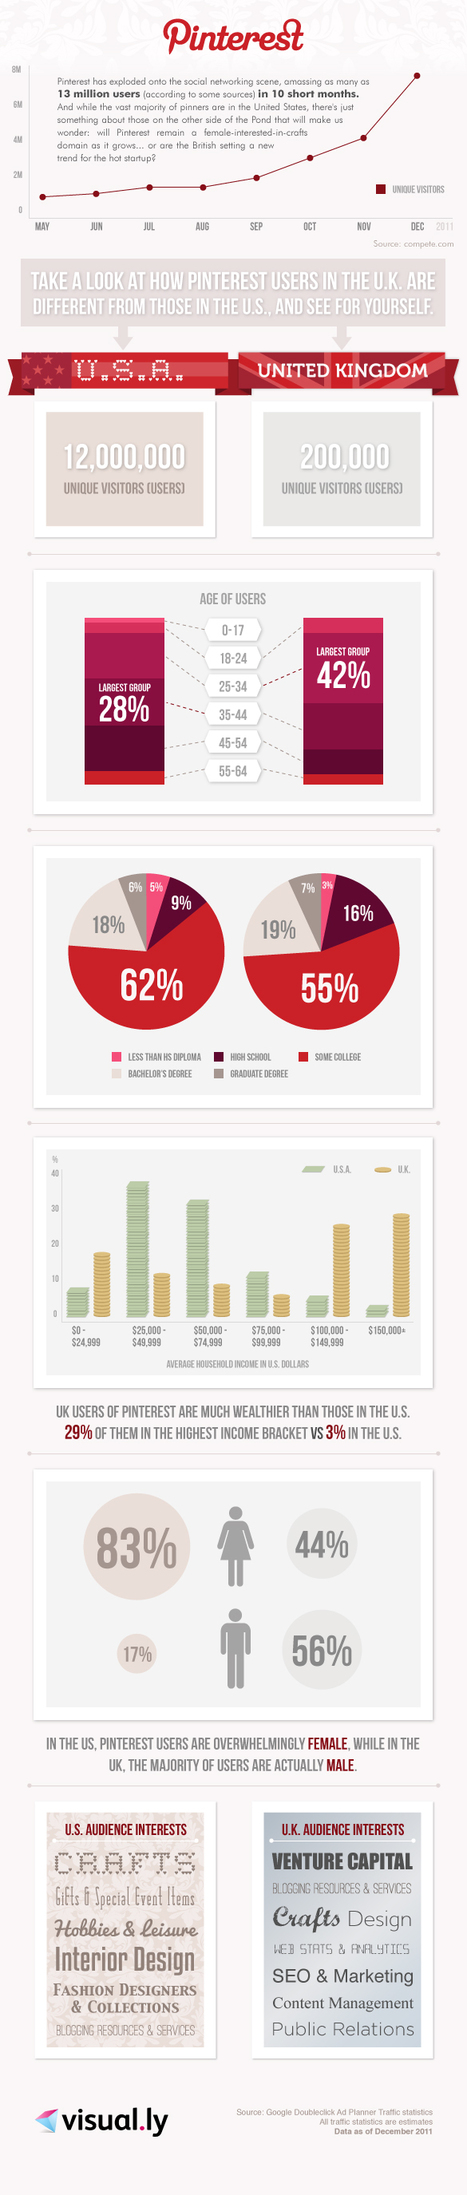 Think You Know Pinterest? Think Again | Social Media Headlines | Scoop.it